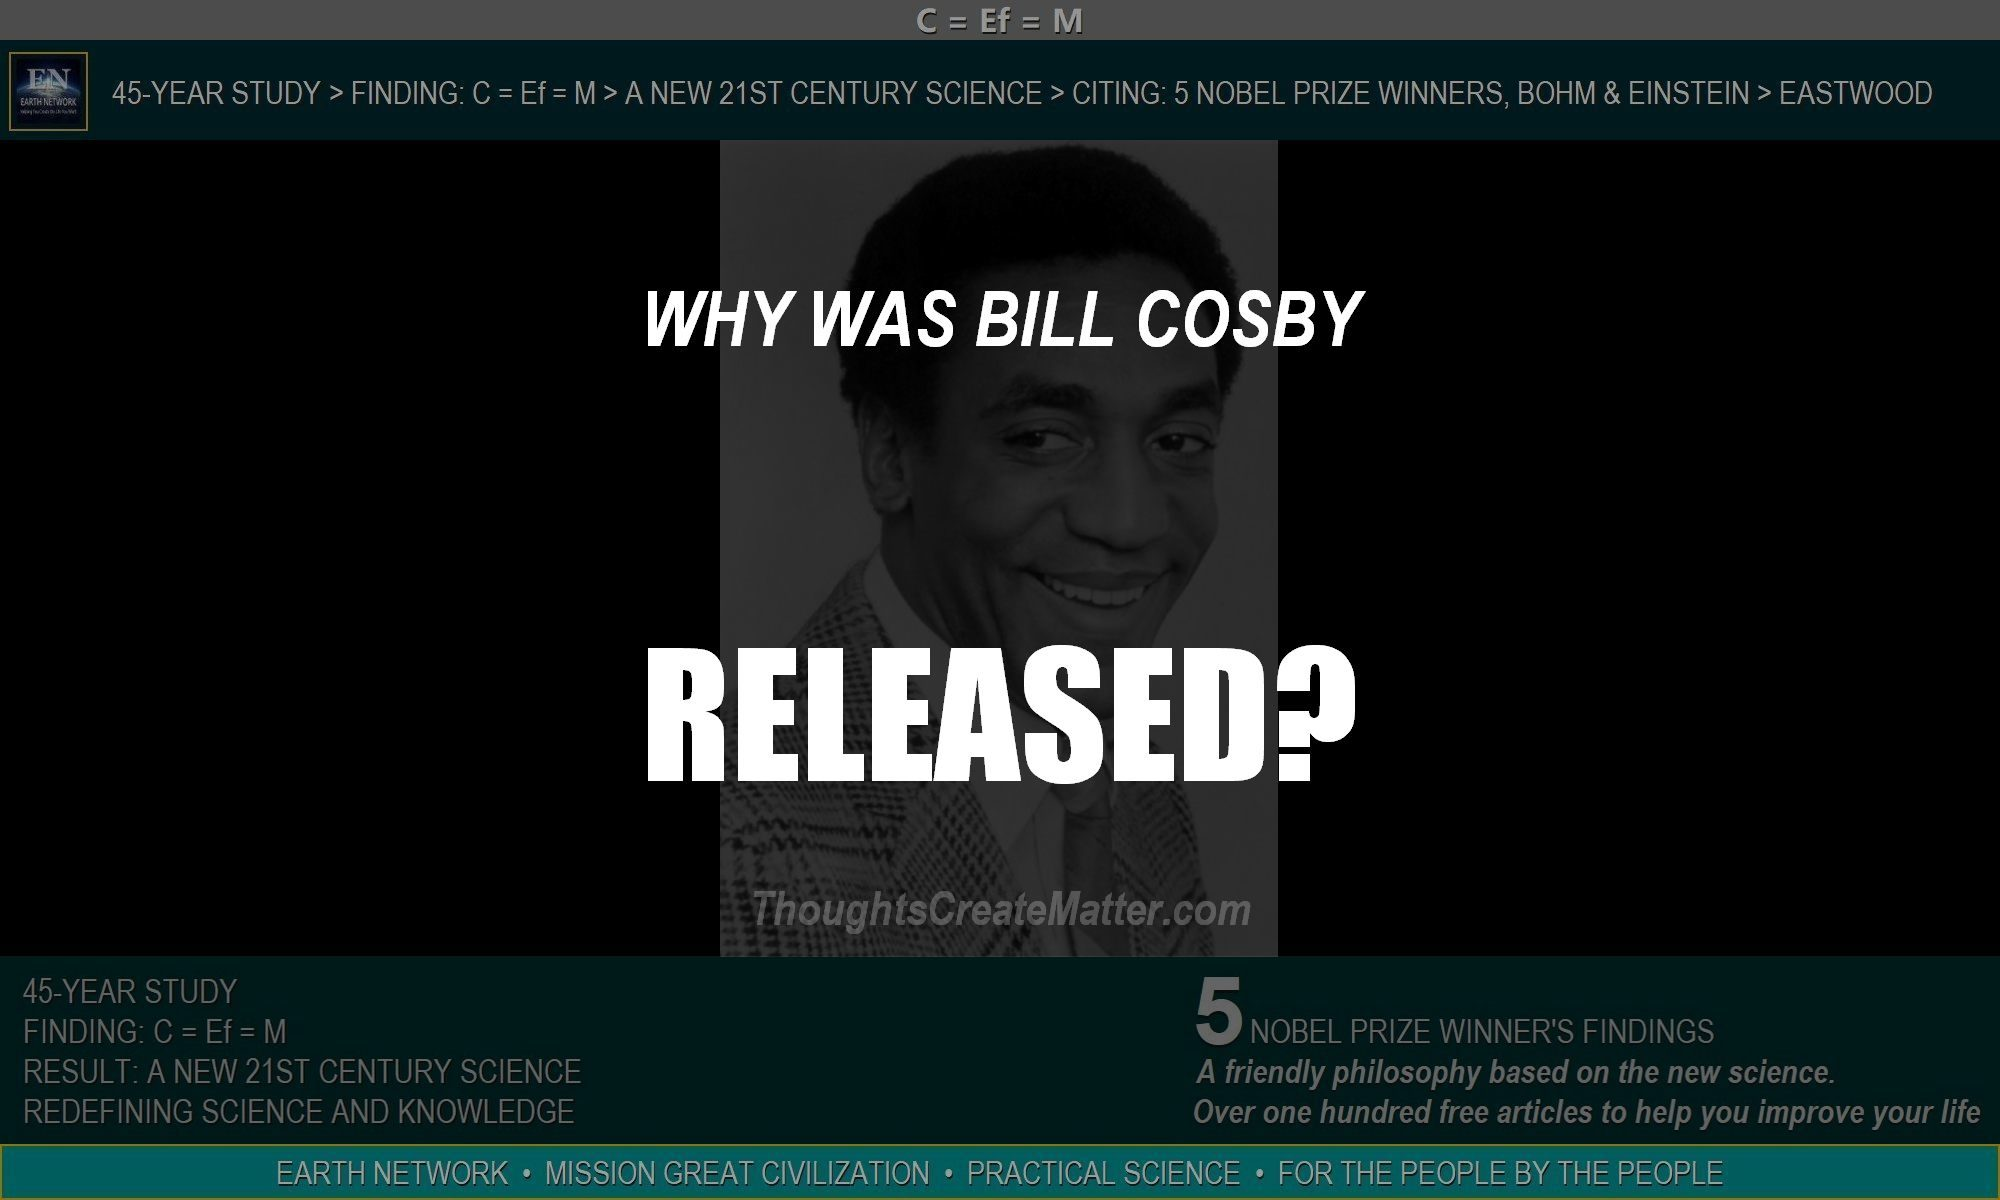 Bill Cosby smiling. Why was he released from prison? Criminal justice system needs reform.